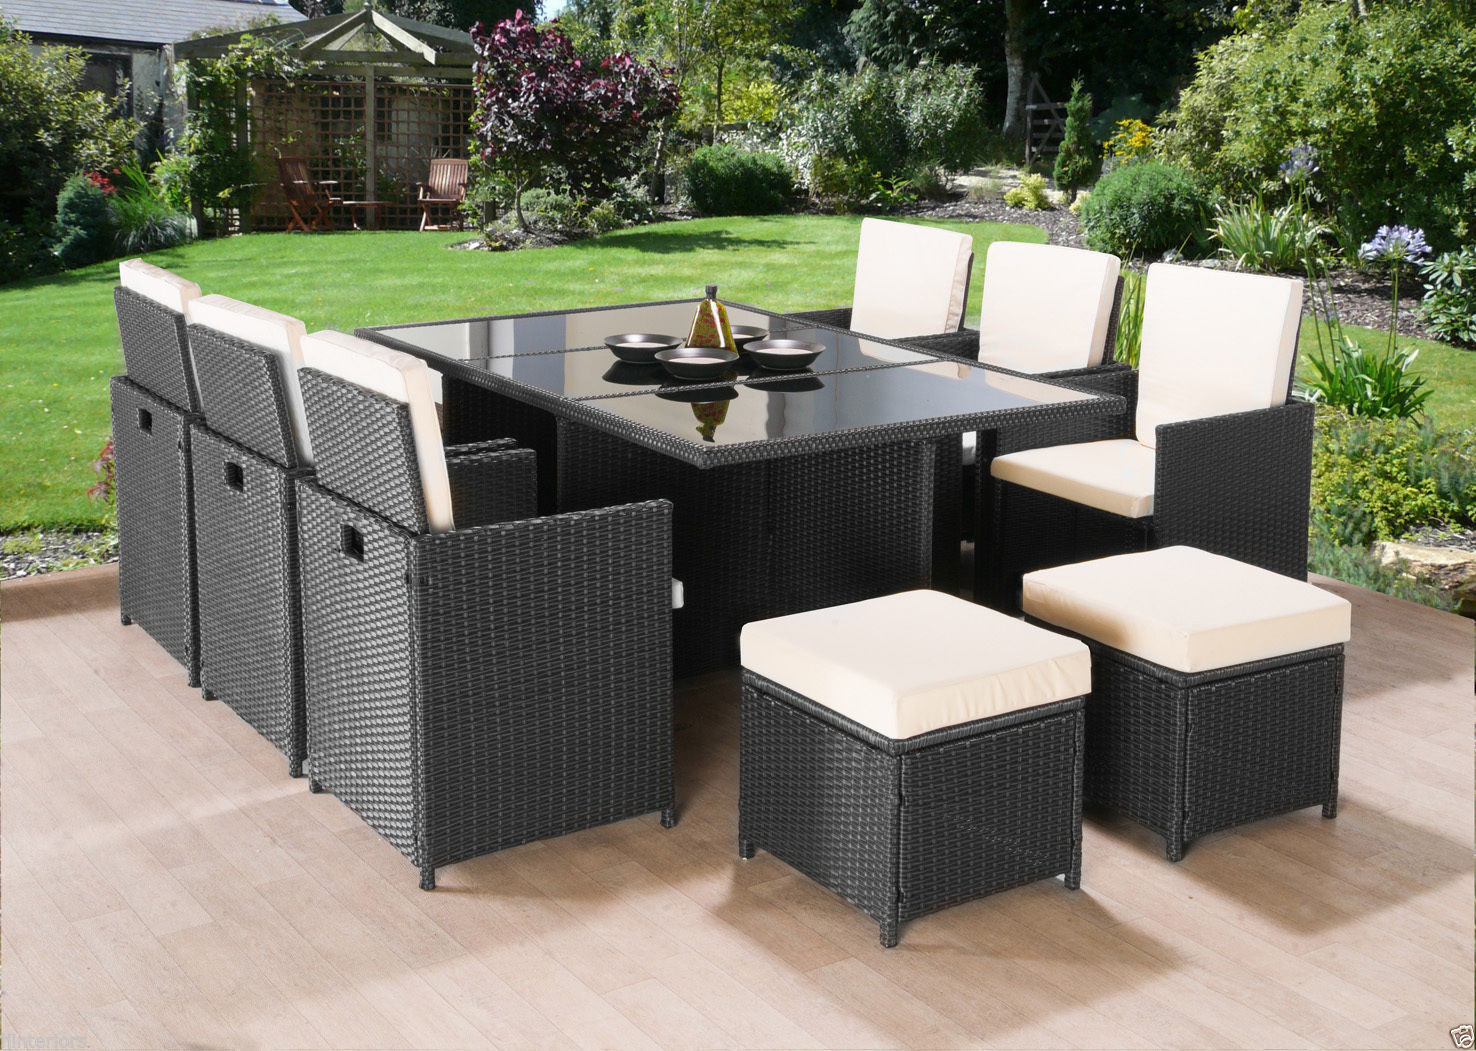 CUBE RATTAN GARDEN FURNITURE SET CHAIRS SOFA TABLE OUTDOOR PATIO WICKER 10 SEATS